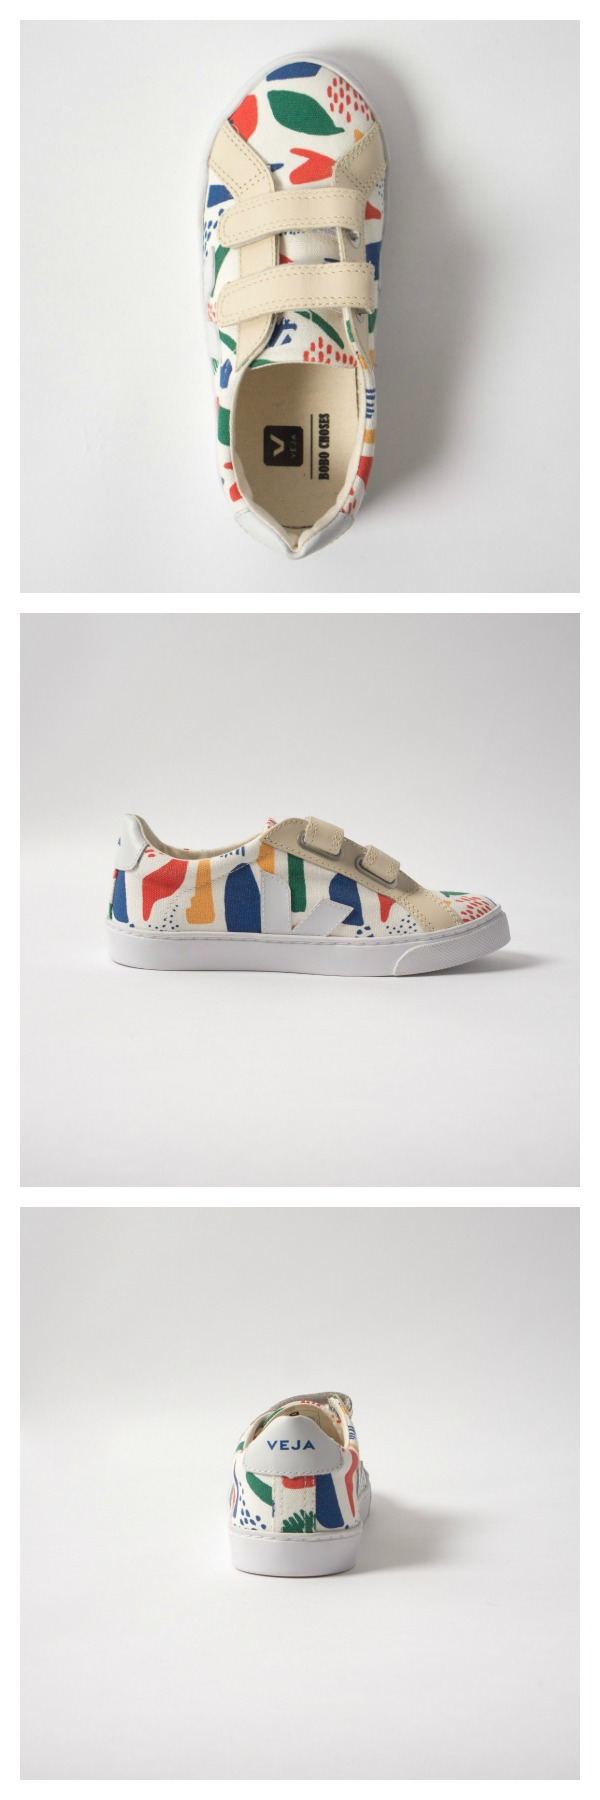 bobo-choses-colab-ss16-collection-veja-sneakers